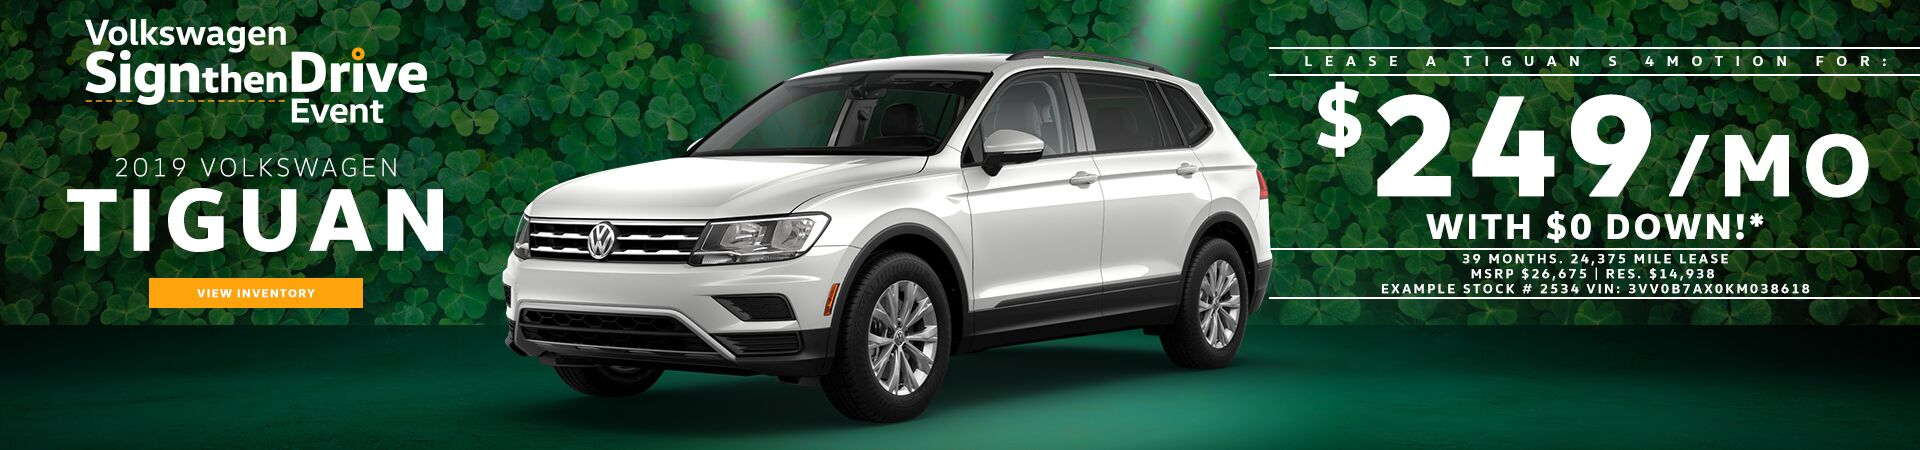 2019 Tiguan Sign then Drive offer